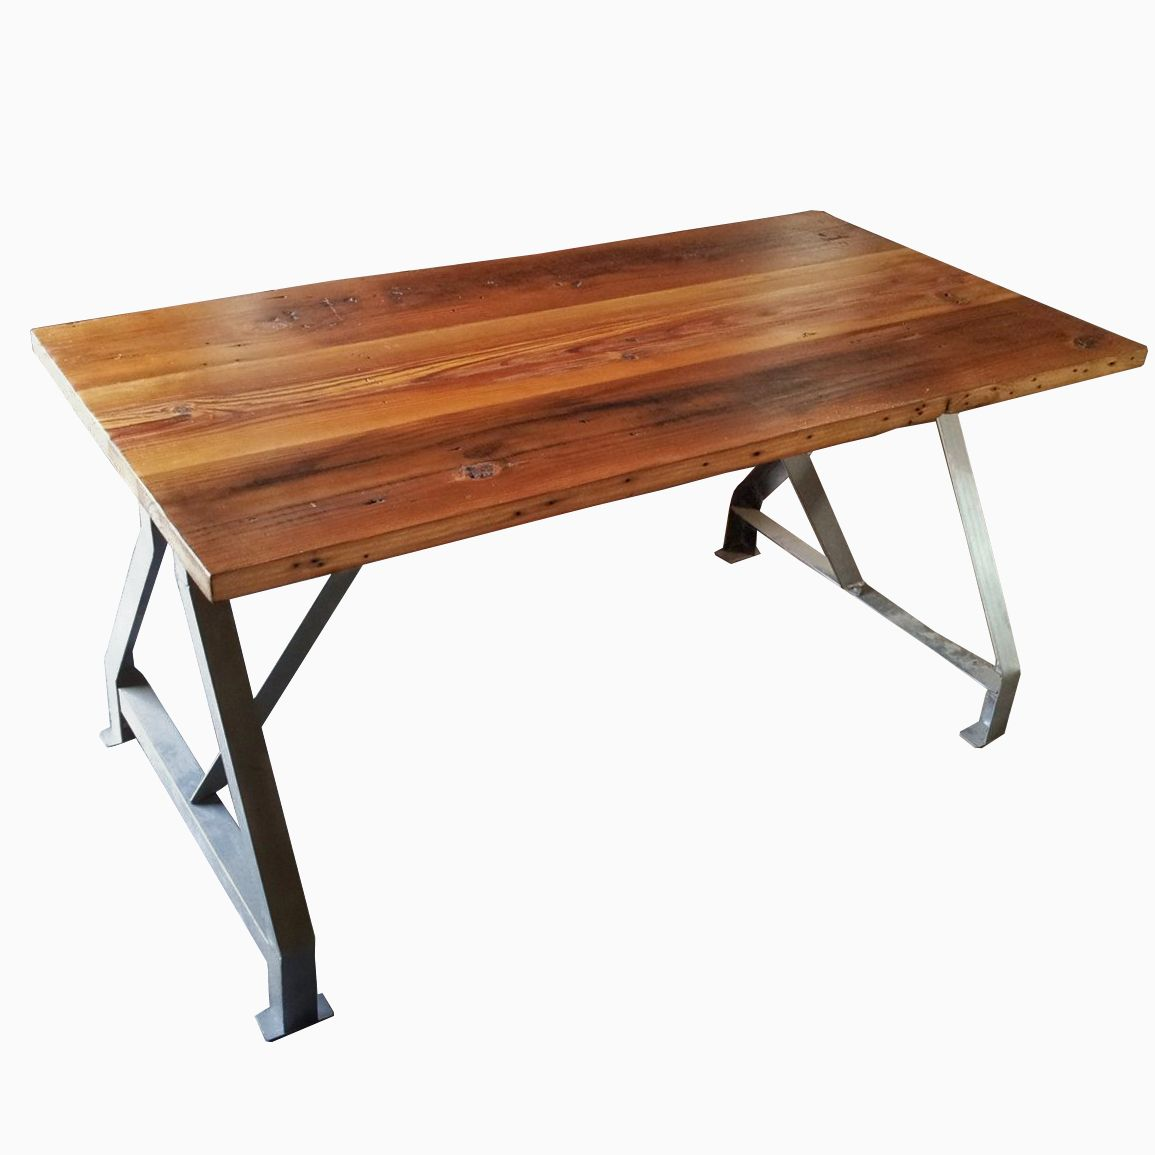 Custom Made Factory Work Table With Industrial Metal Base And Made From  Reclaimed Wood Plank Top. Buy a Hand Made Factory Work Table With Industrial Metal Base And